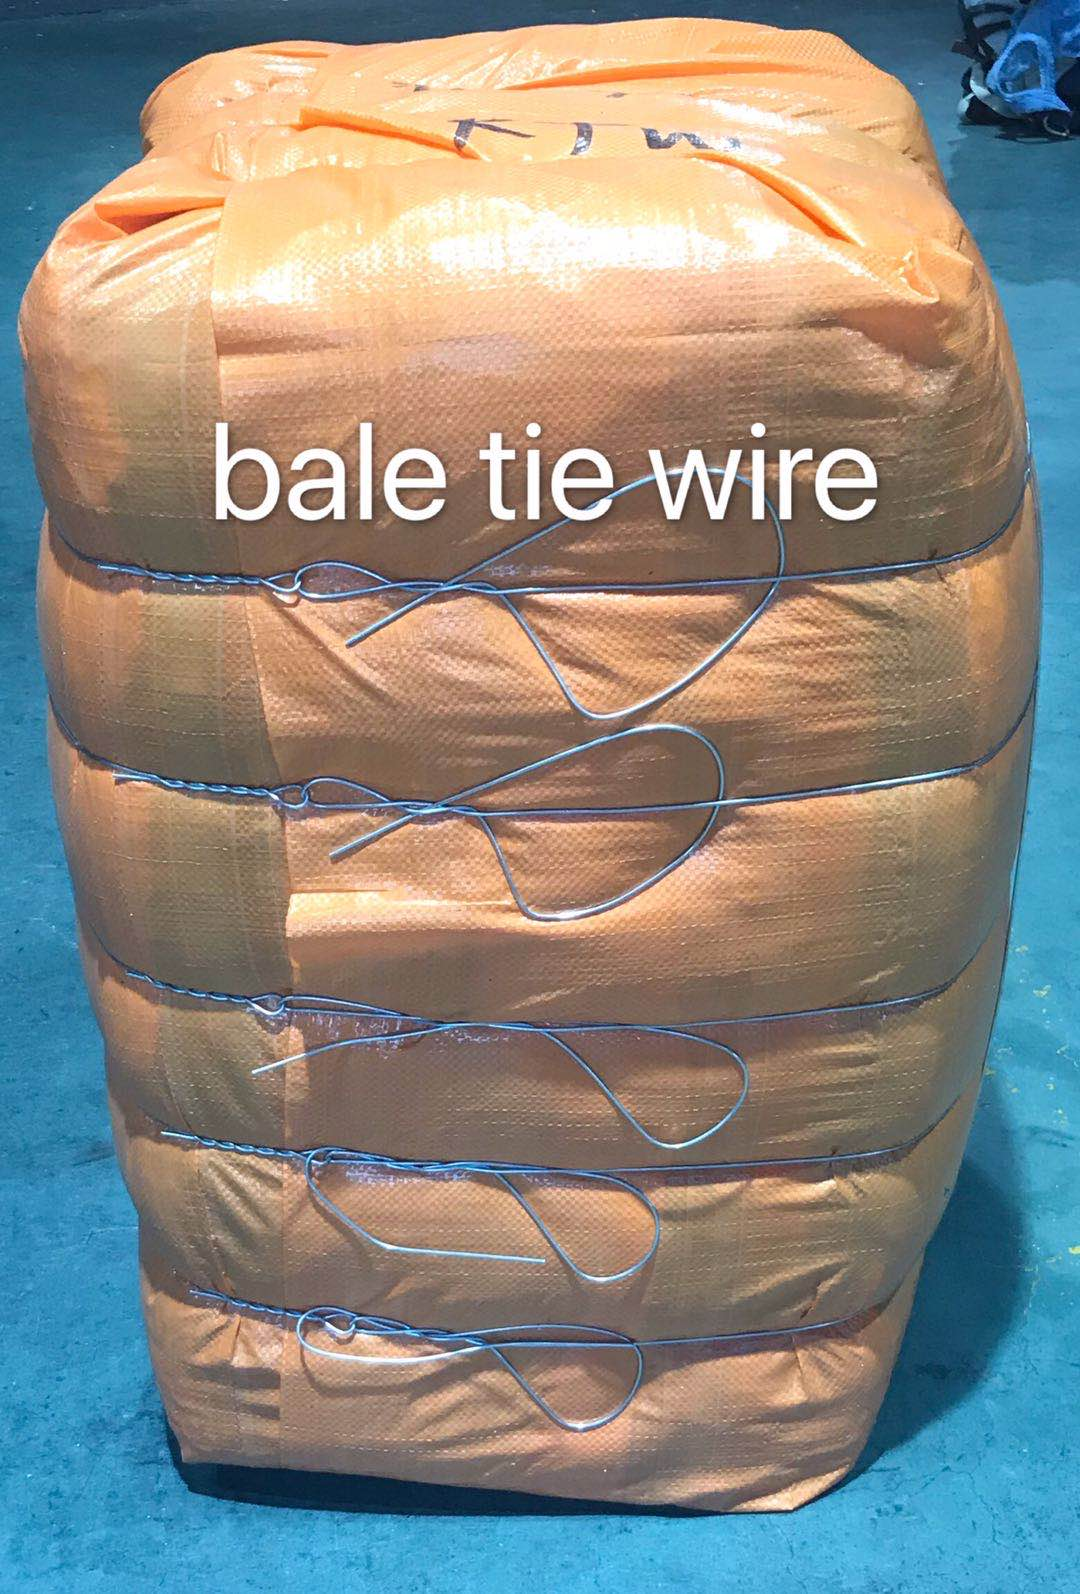 used clothes bale ties